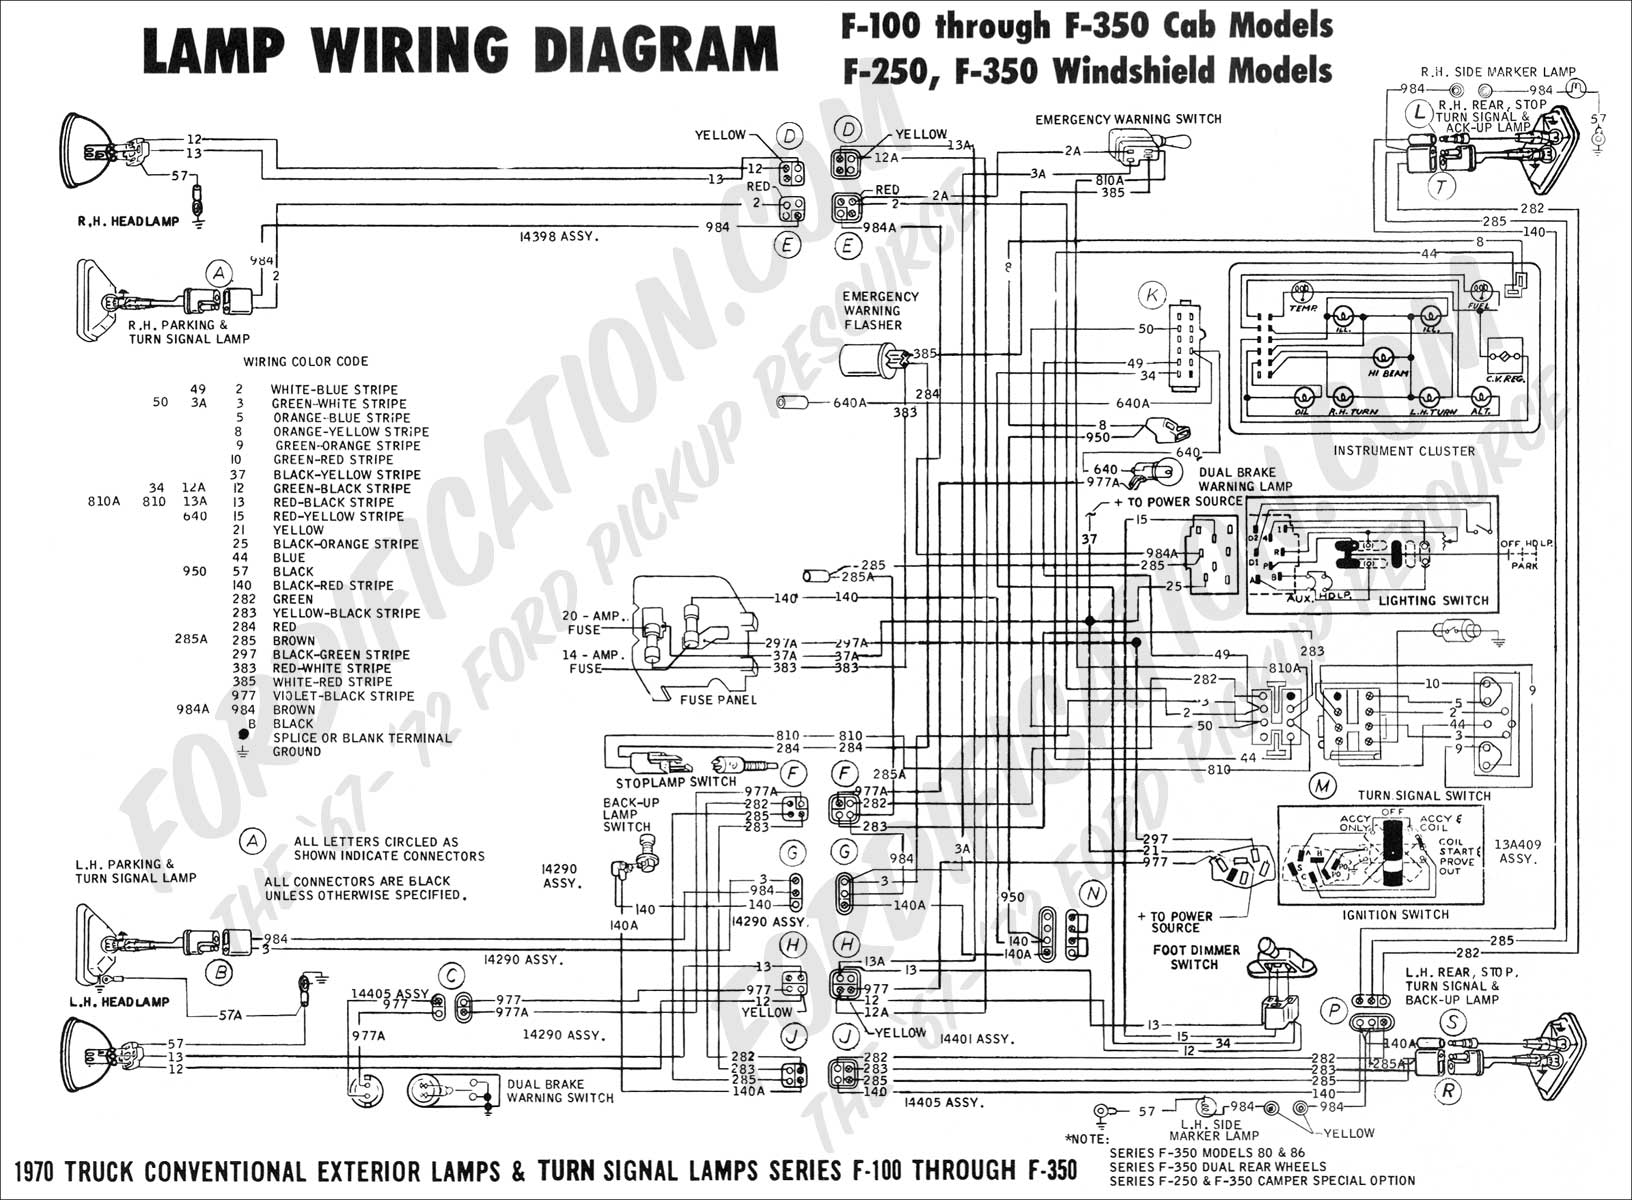 wiring diagram for 2001 f250 schematics wiring diagrams u2022 rh rh smallboxdesigns co 1997 ford f150 wiring diagram headlight 97 ford f150 wiring diagram